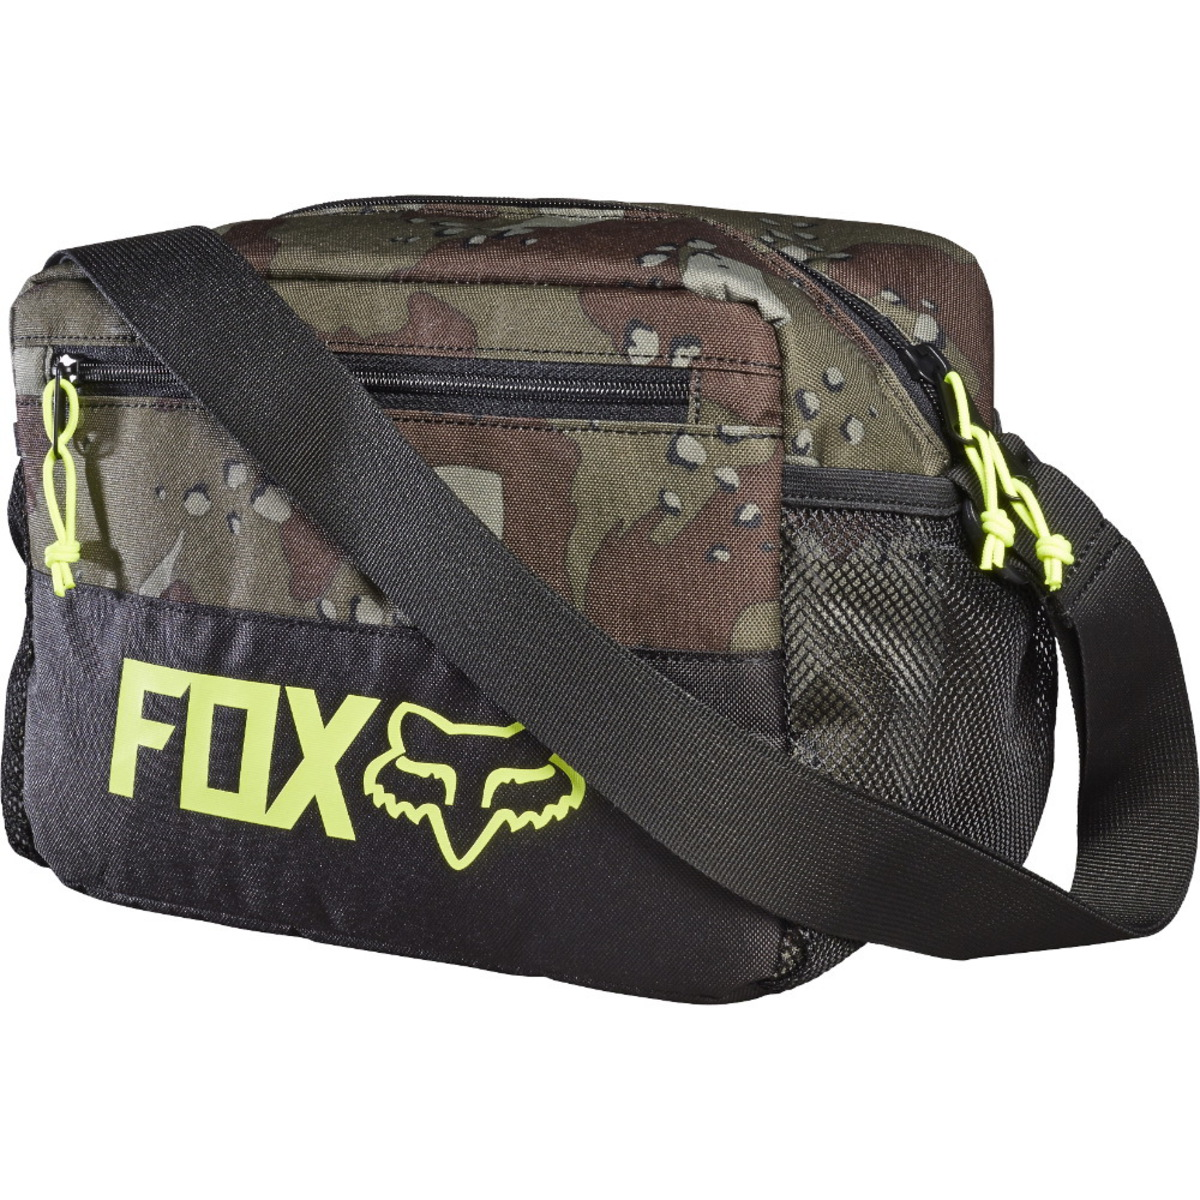 taška FOX - Hazzard Cooler - Black - 16260-001